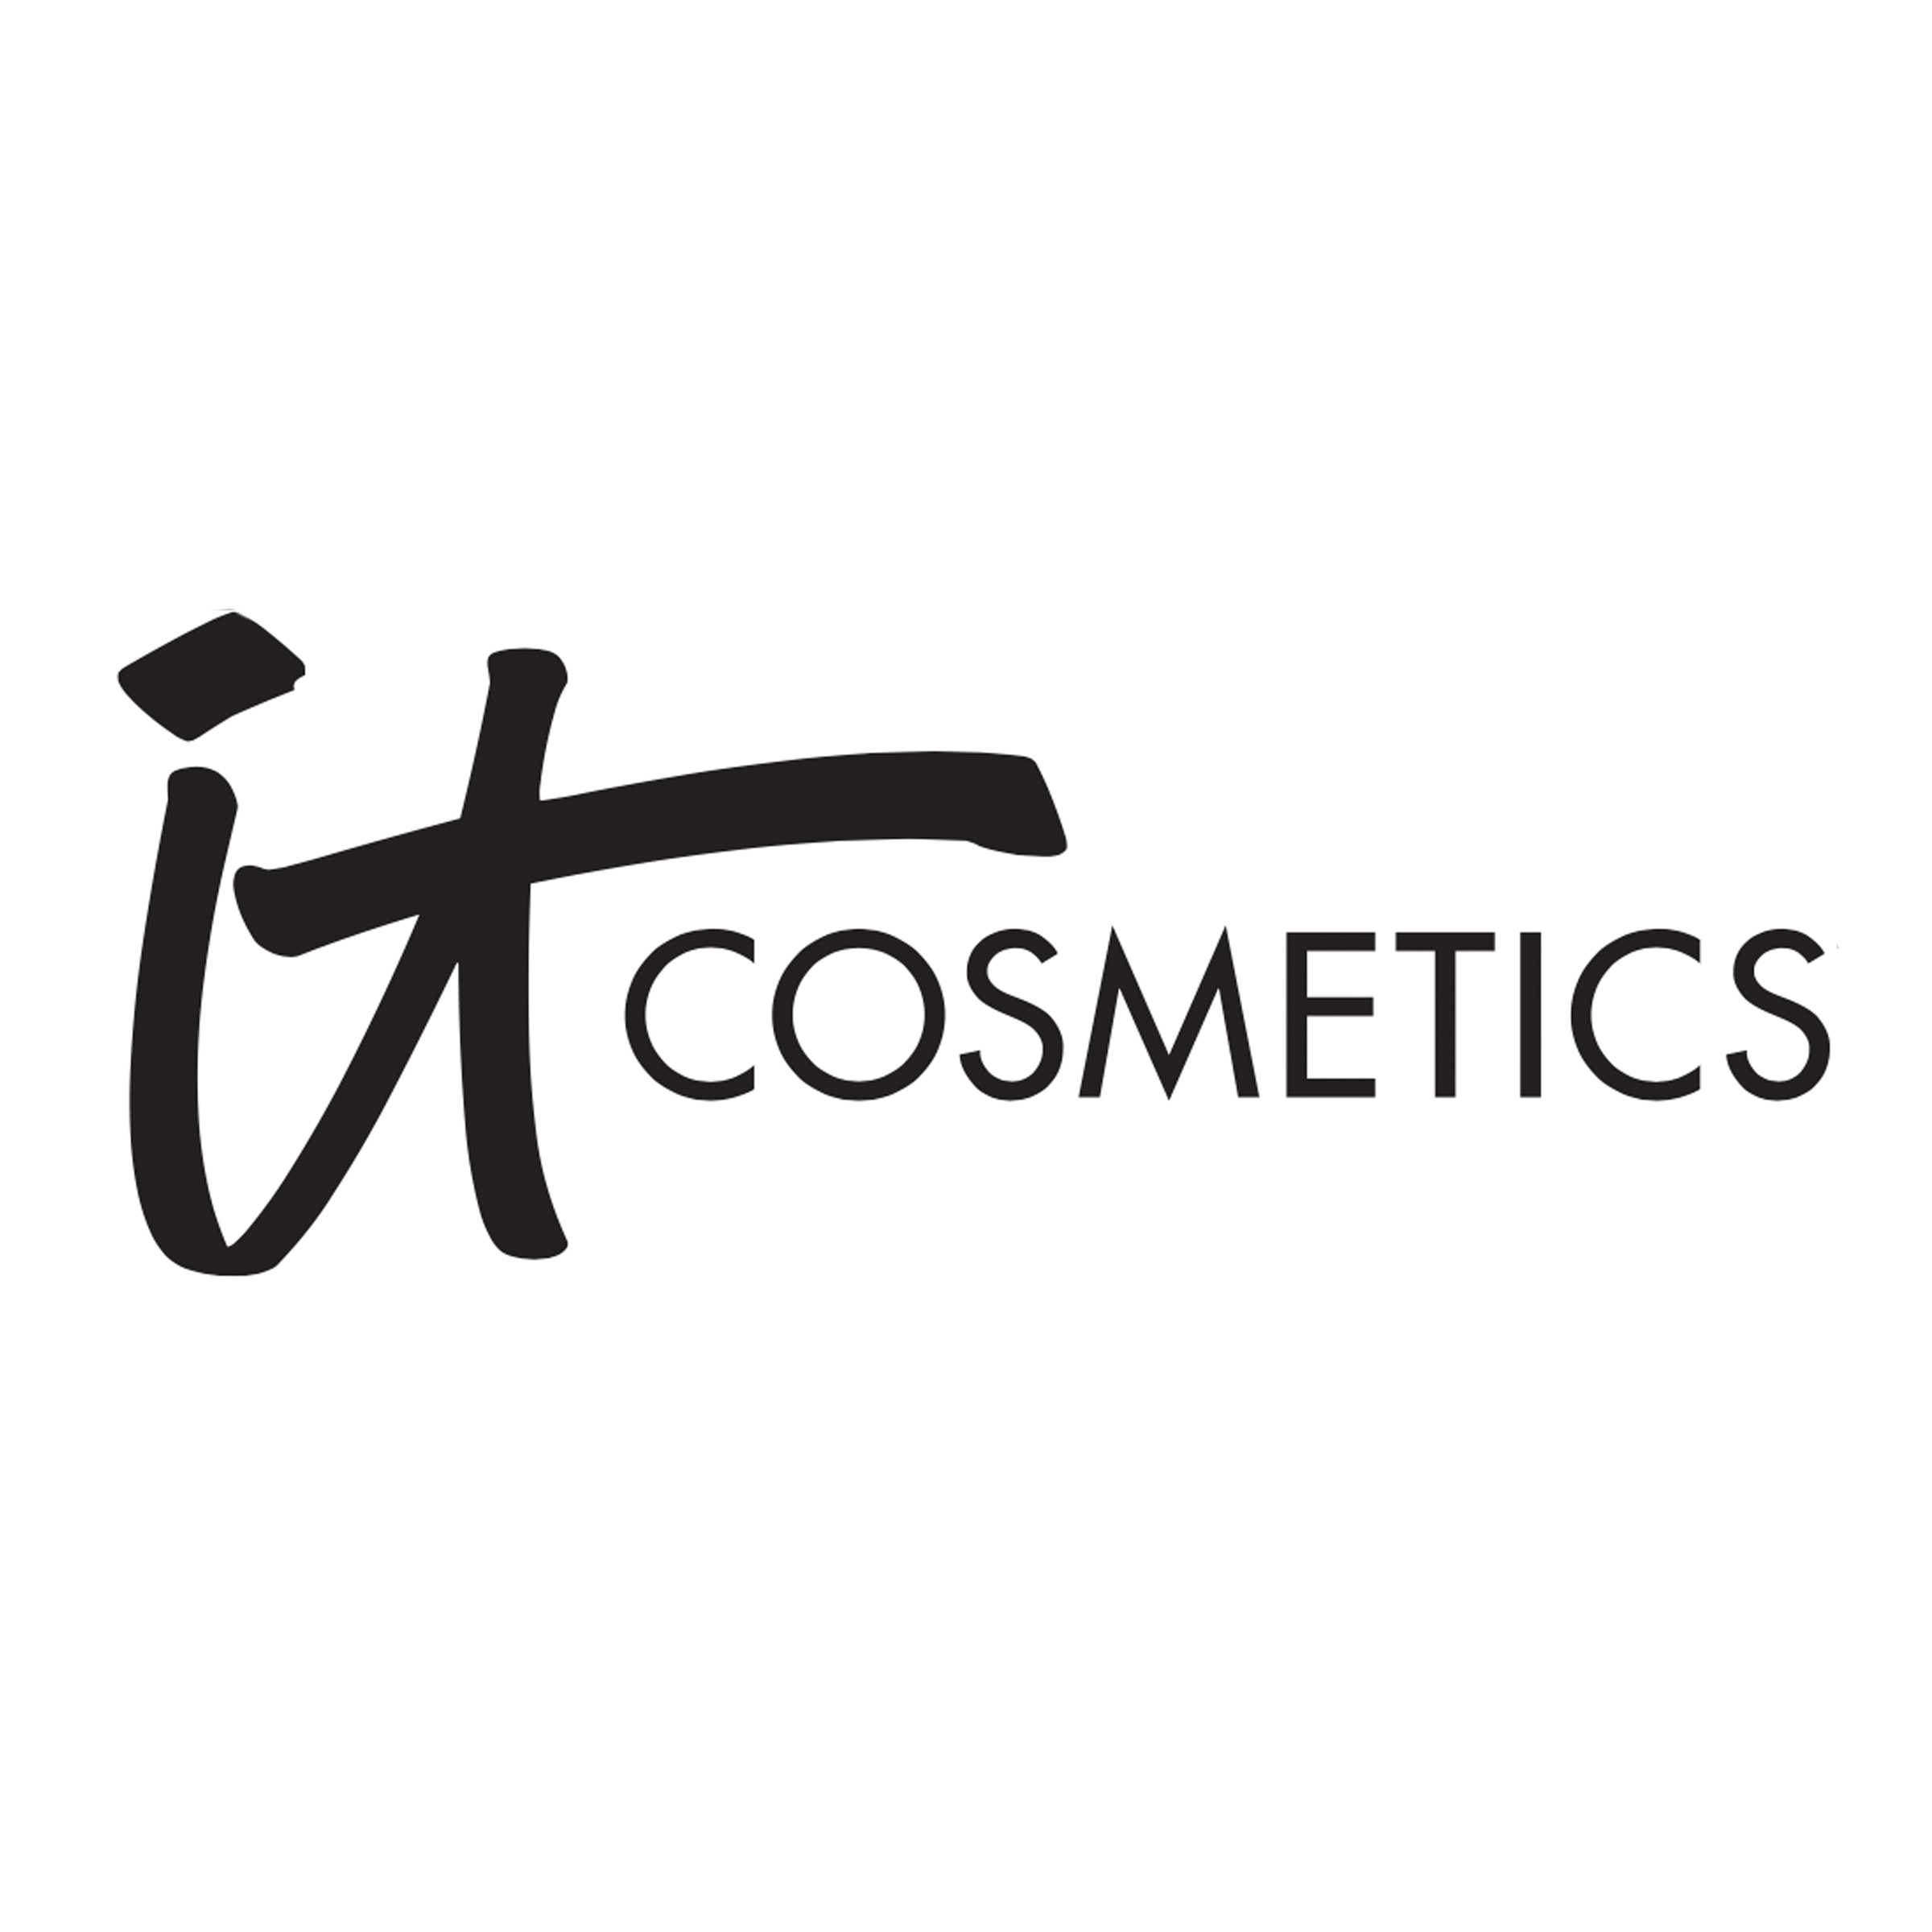 it cosmetics logo.jpg